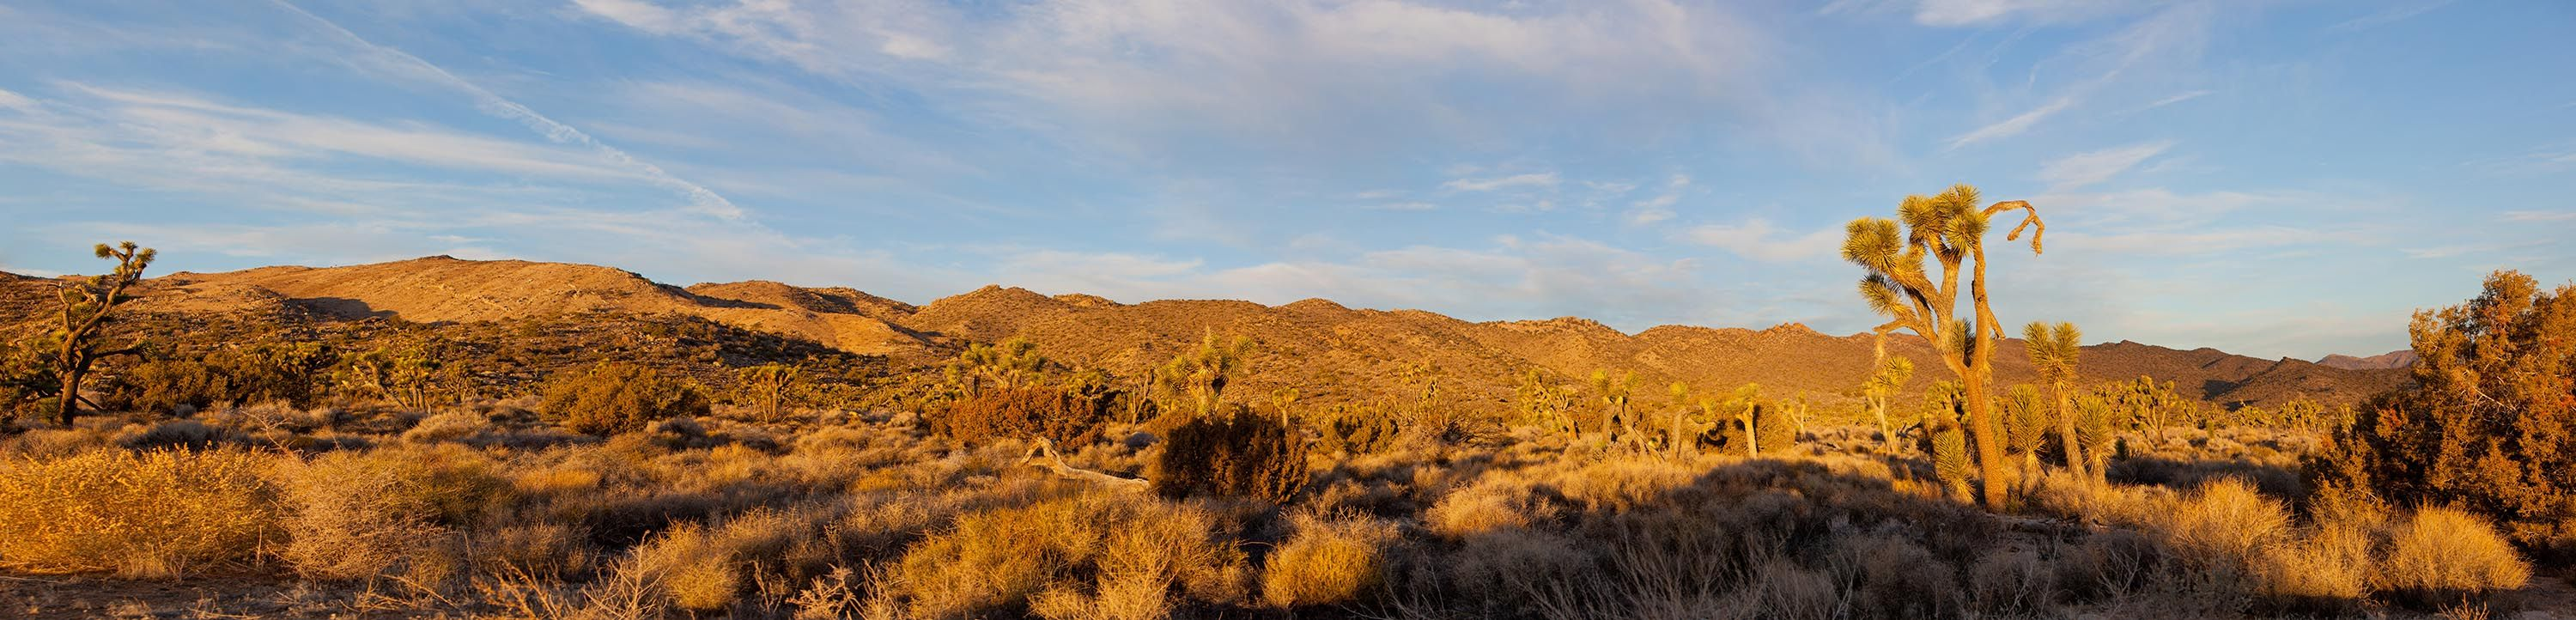 A stitched Panorama of Sunrise, looking west, in Joshua Tree National Park